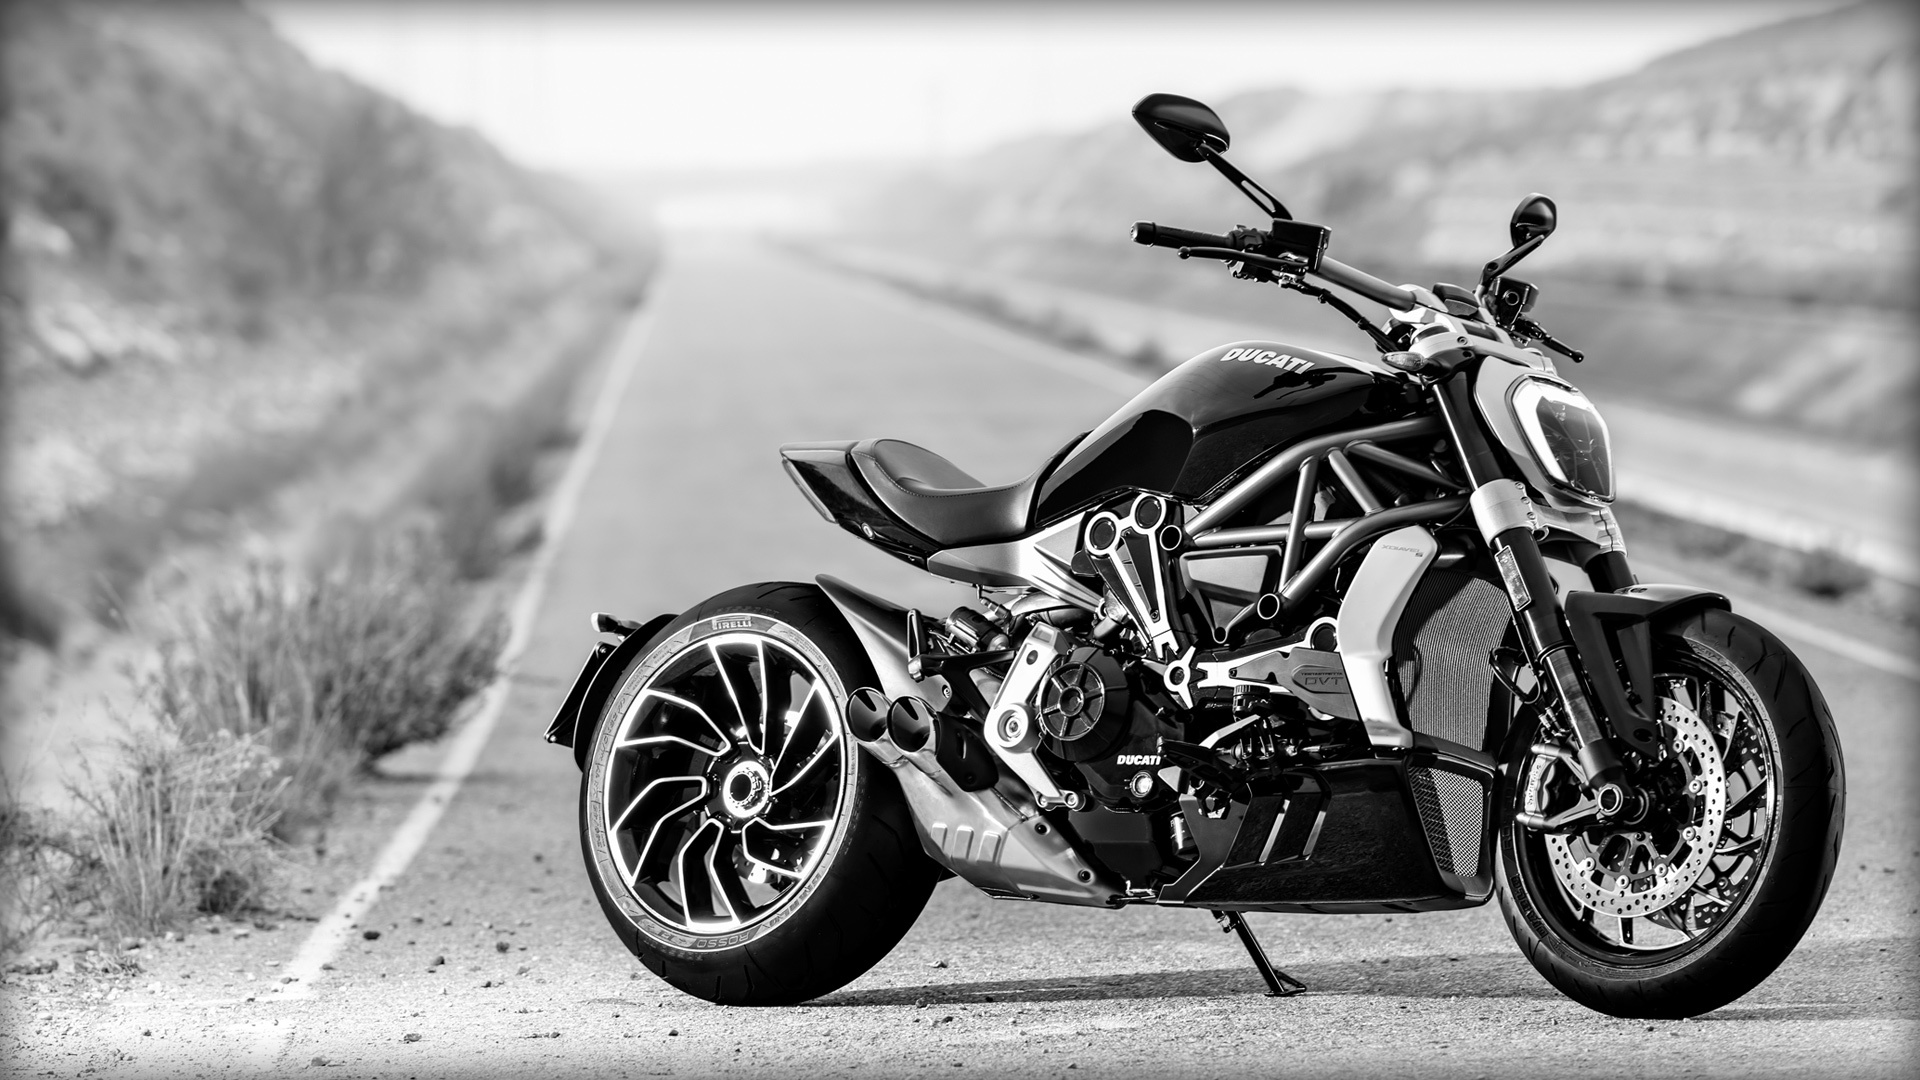 Ducati Xdiavel S For Sale